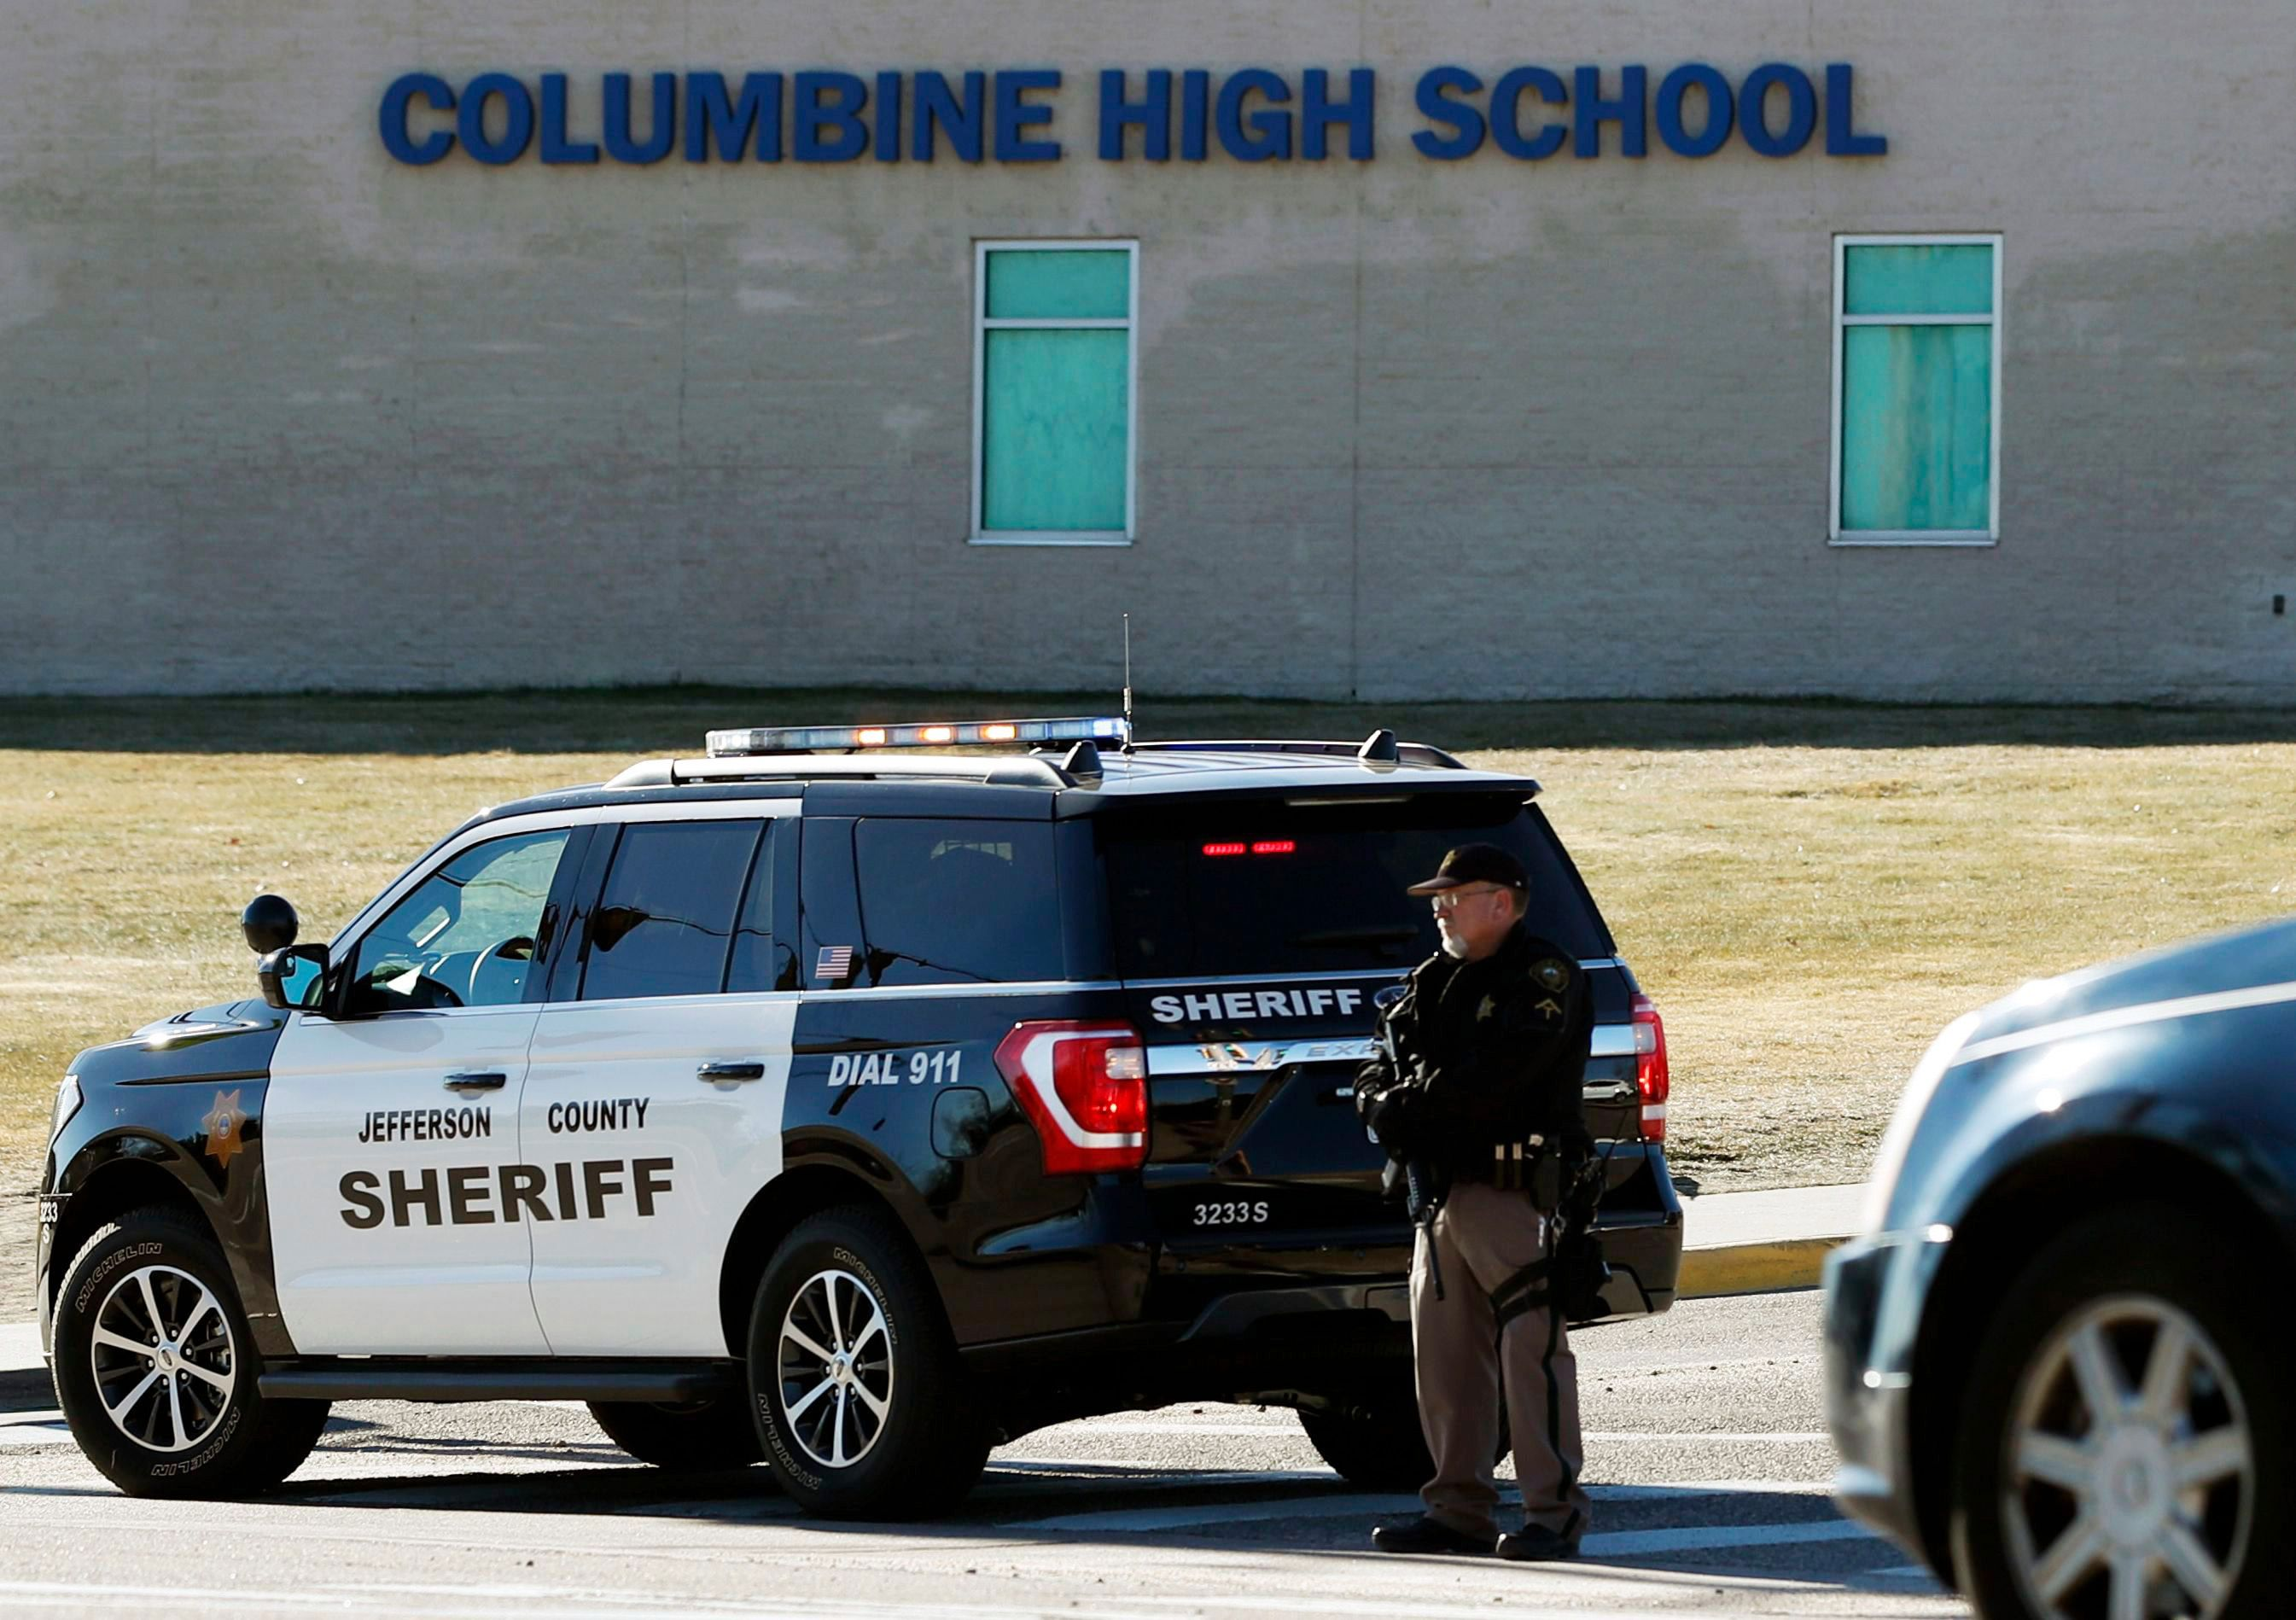 An 18-Year-Old Woman 'Infatuated' with Columbine Has Prompted an FBI Manhunt and School Closures